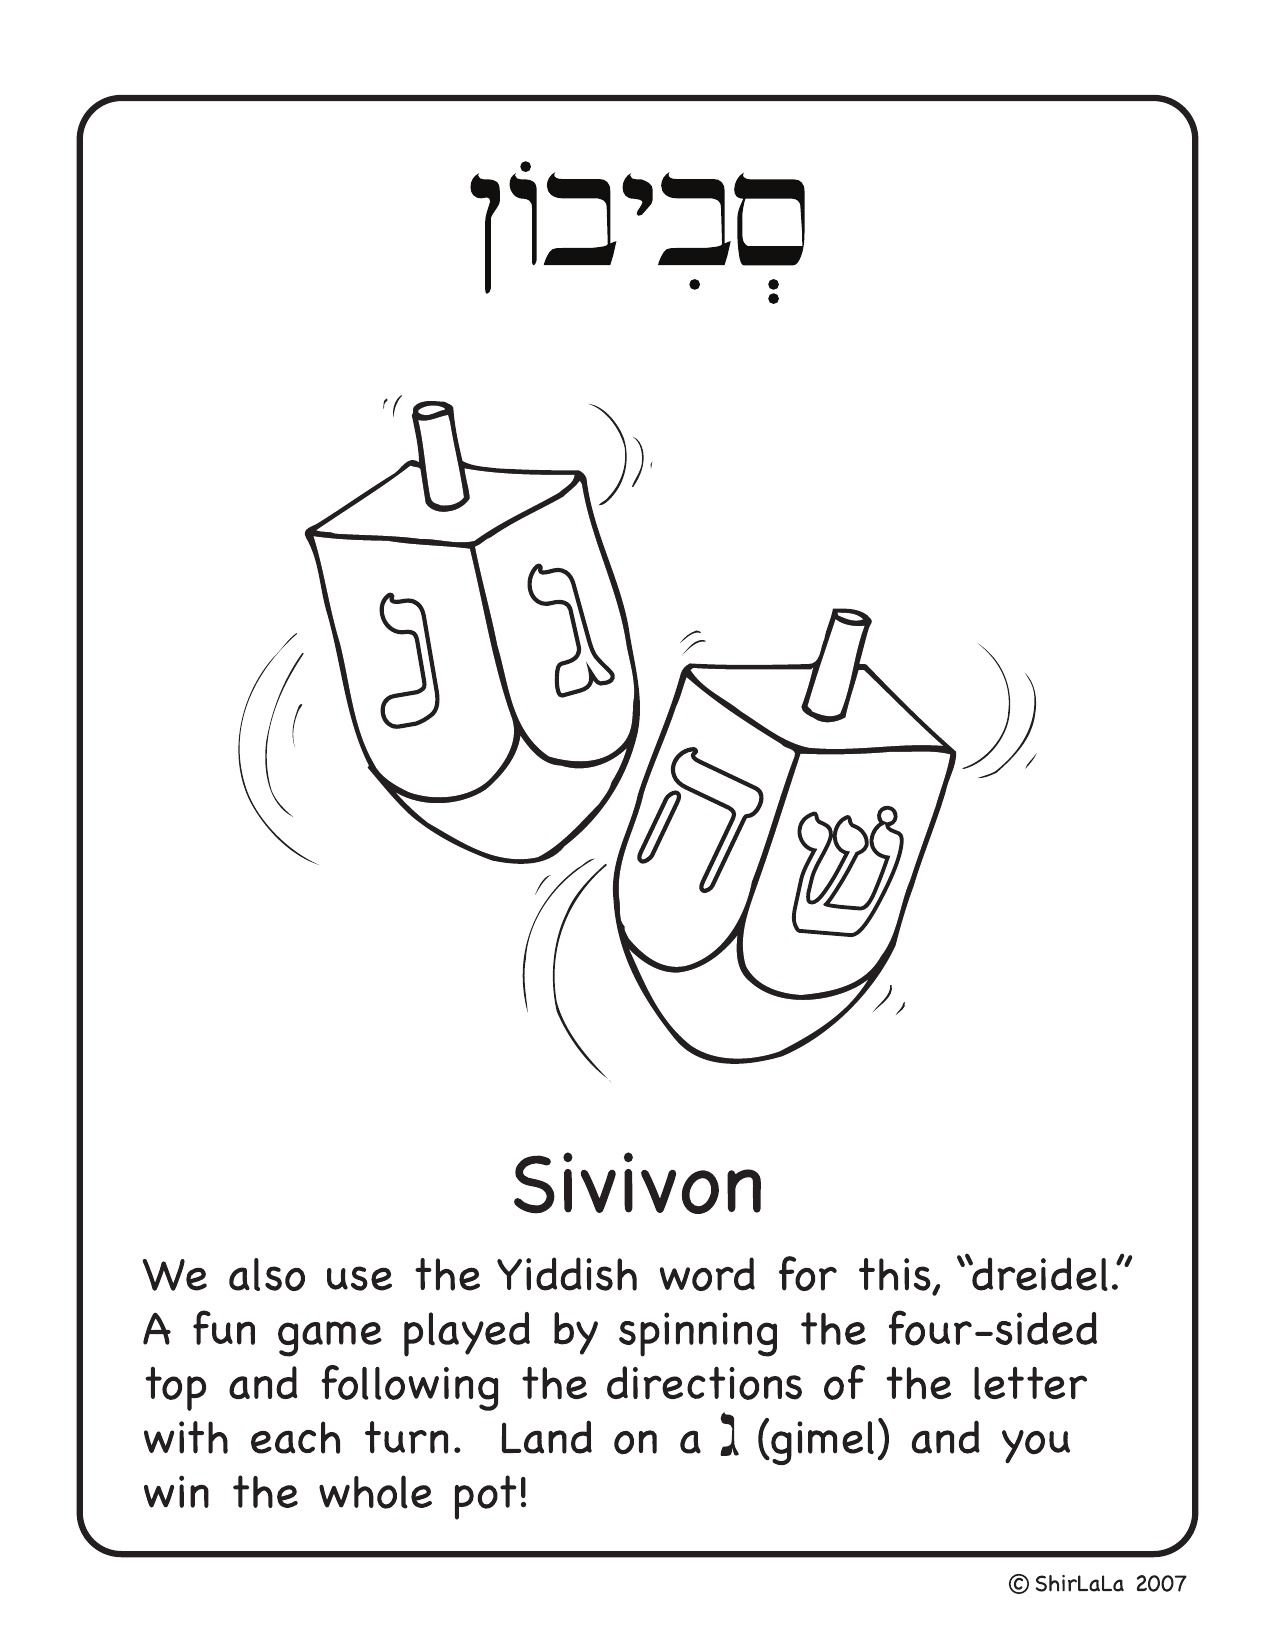 sivivon dreidel hebrew coloring page for chanukah on blog